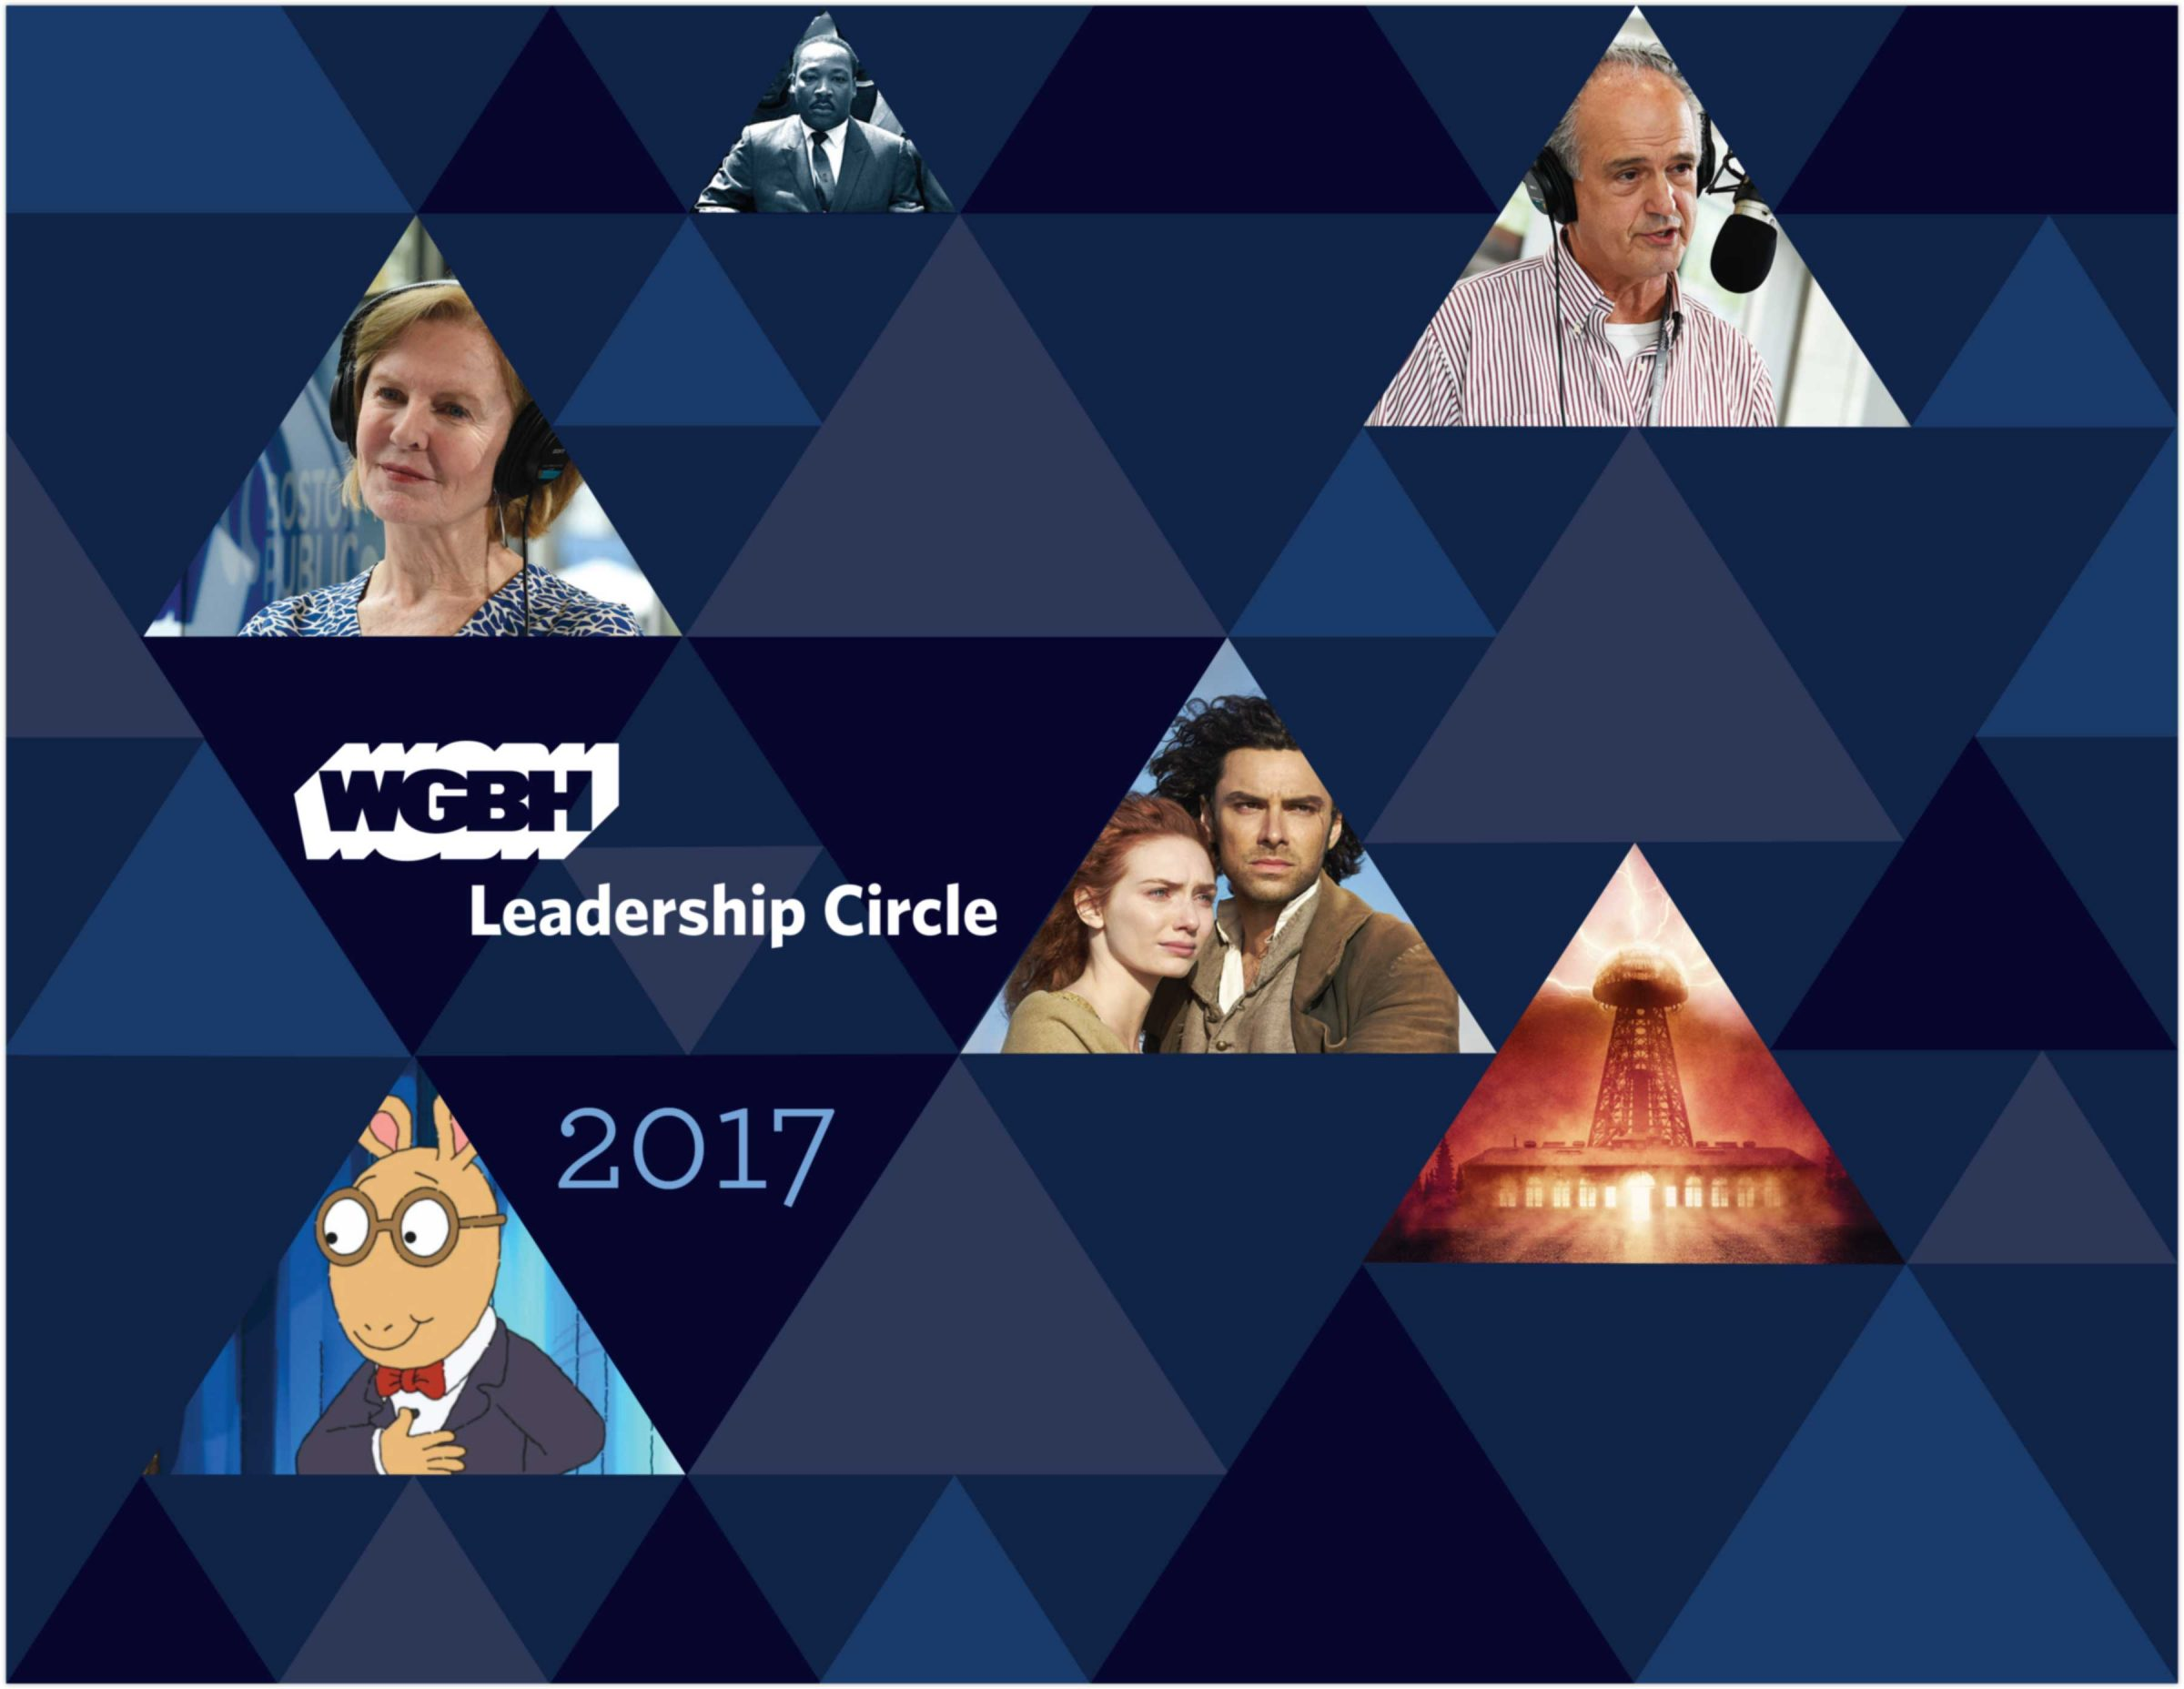 WGBH Leadership Circle digital advertisement